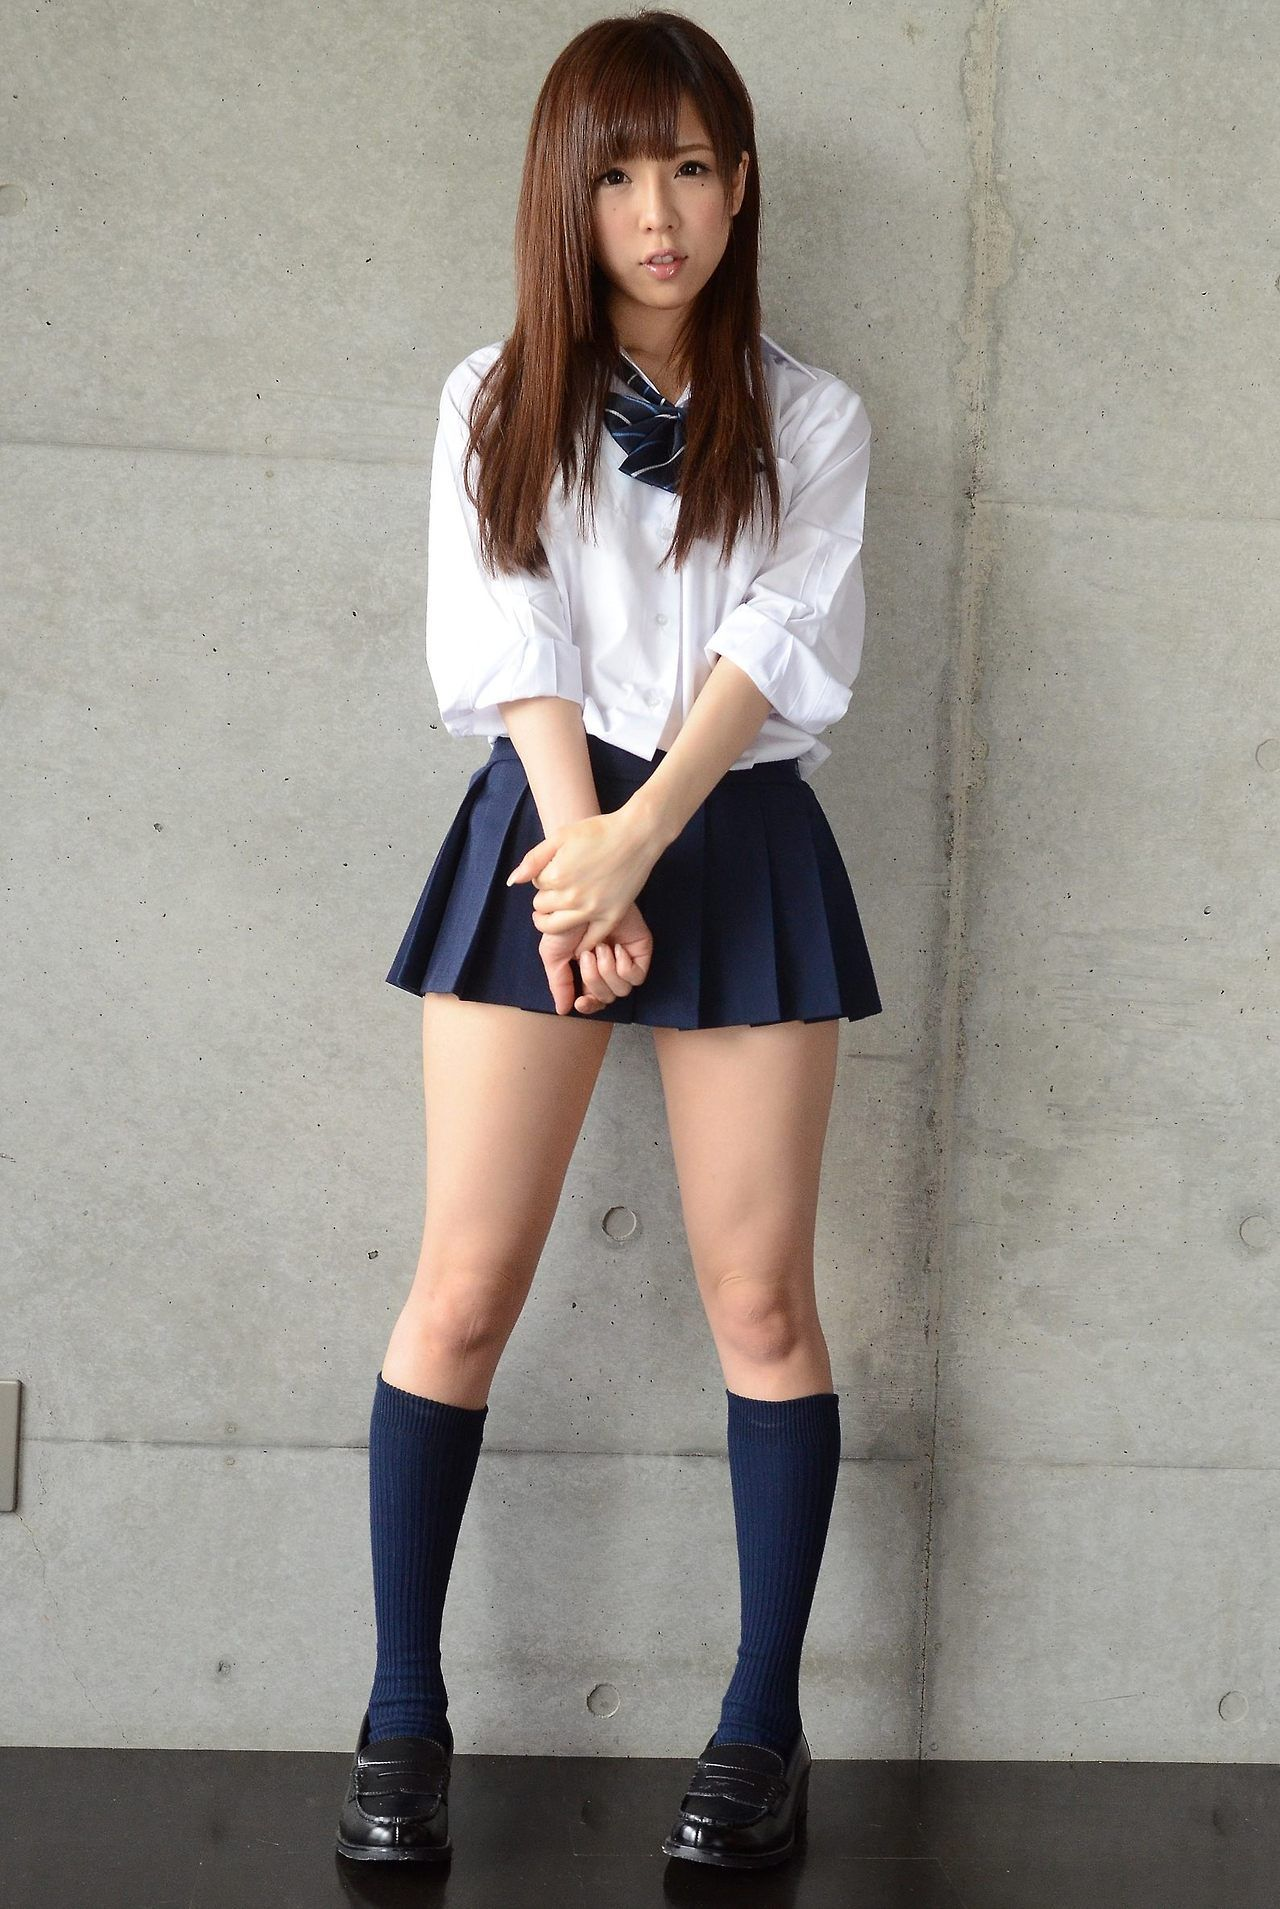 School hot asian teen schoolgirl